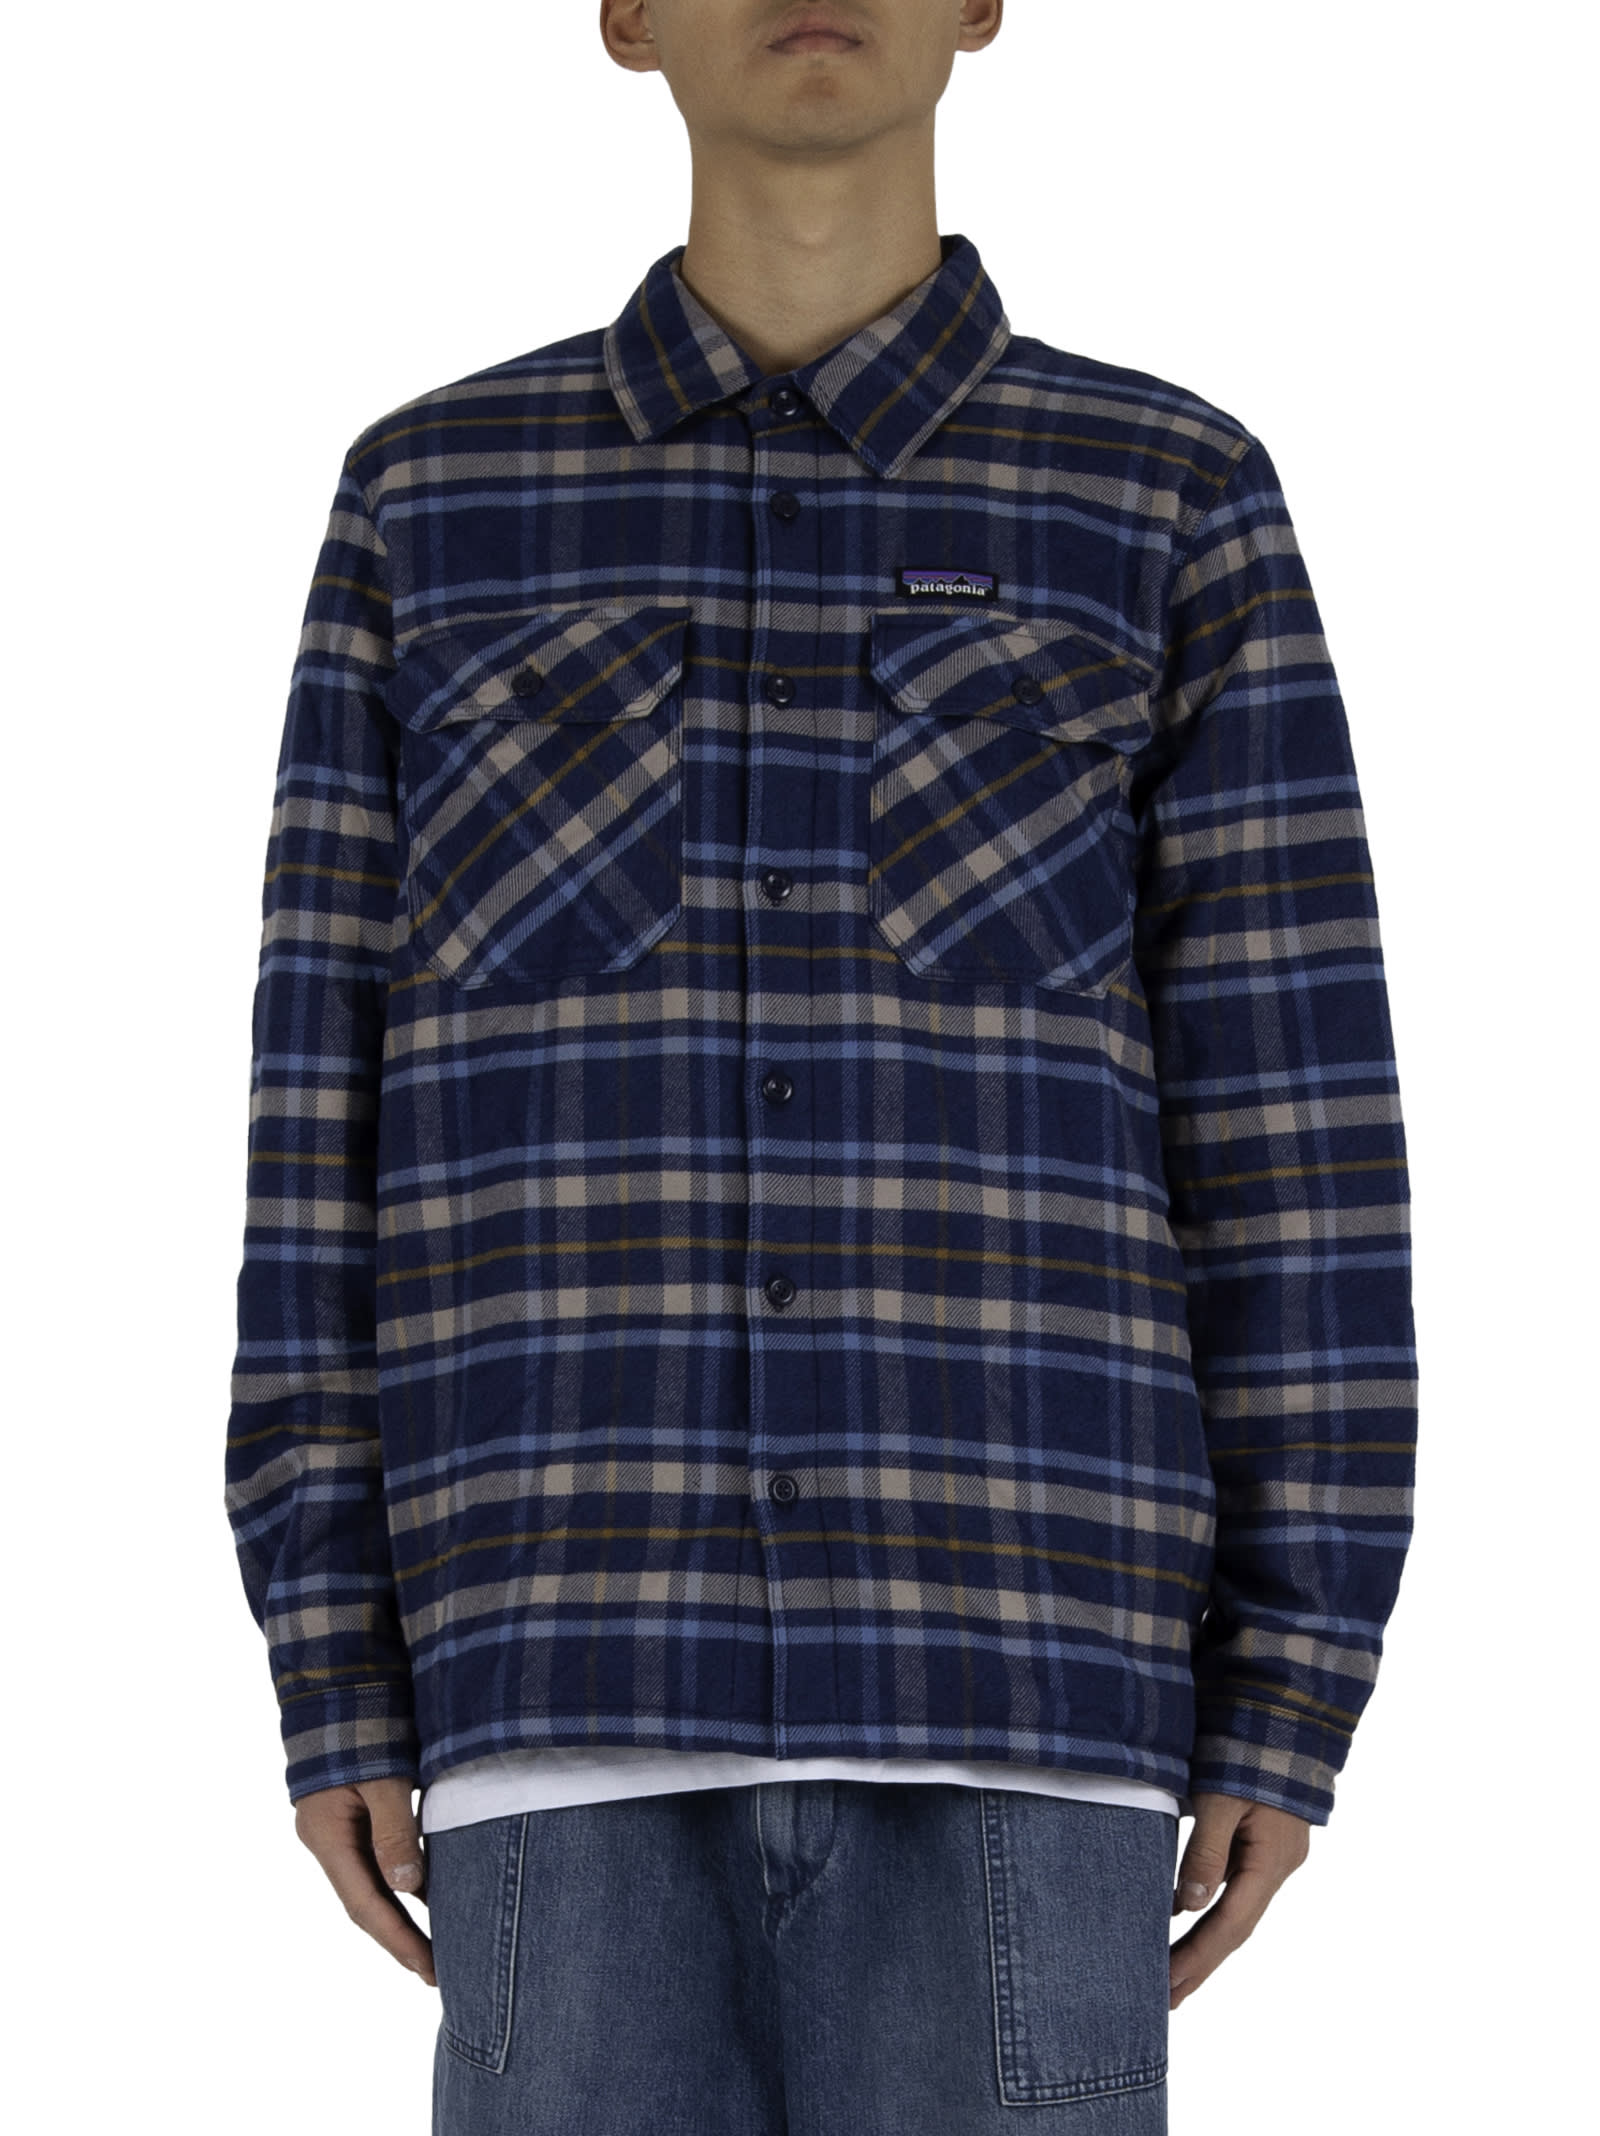 Shirt jacket; - Button closure; - Two chest pockets with button closure; - Lined interior; - Logoed insert applied on the chest. - Composition: 100% Organic Flannel - Color: Blue/Light Blue